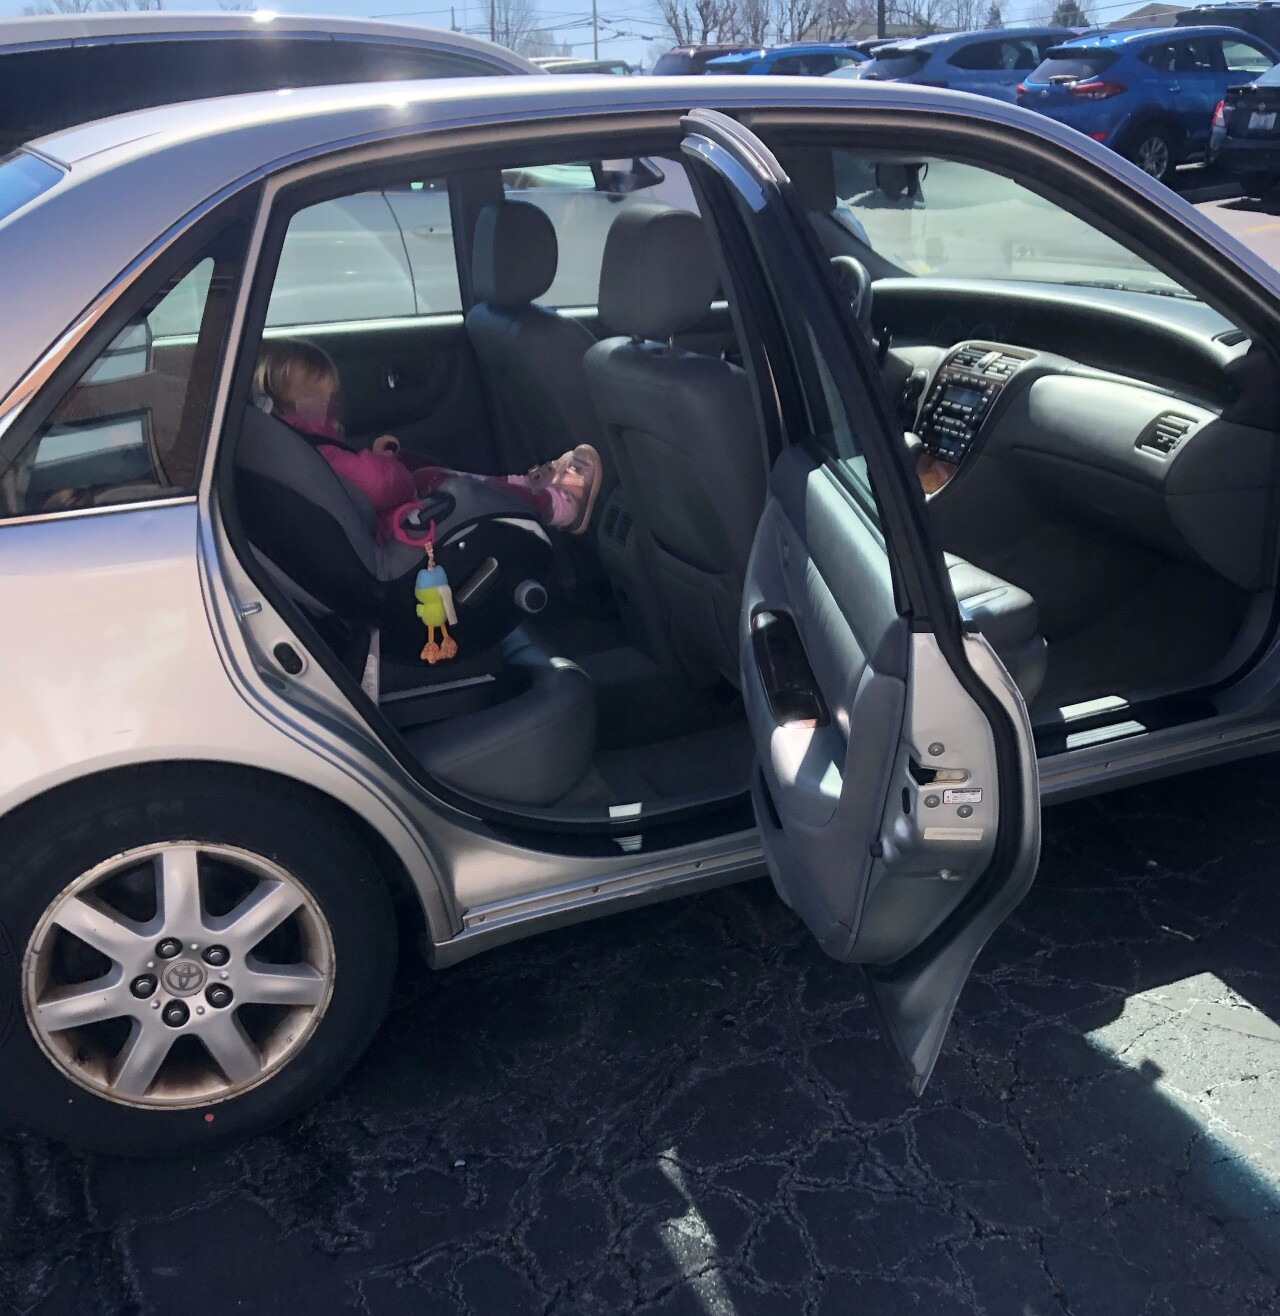 A child sits buckled into a car seat in the back of a 2000 Toyota Avalon. The child's face is blurred for privacy.